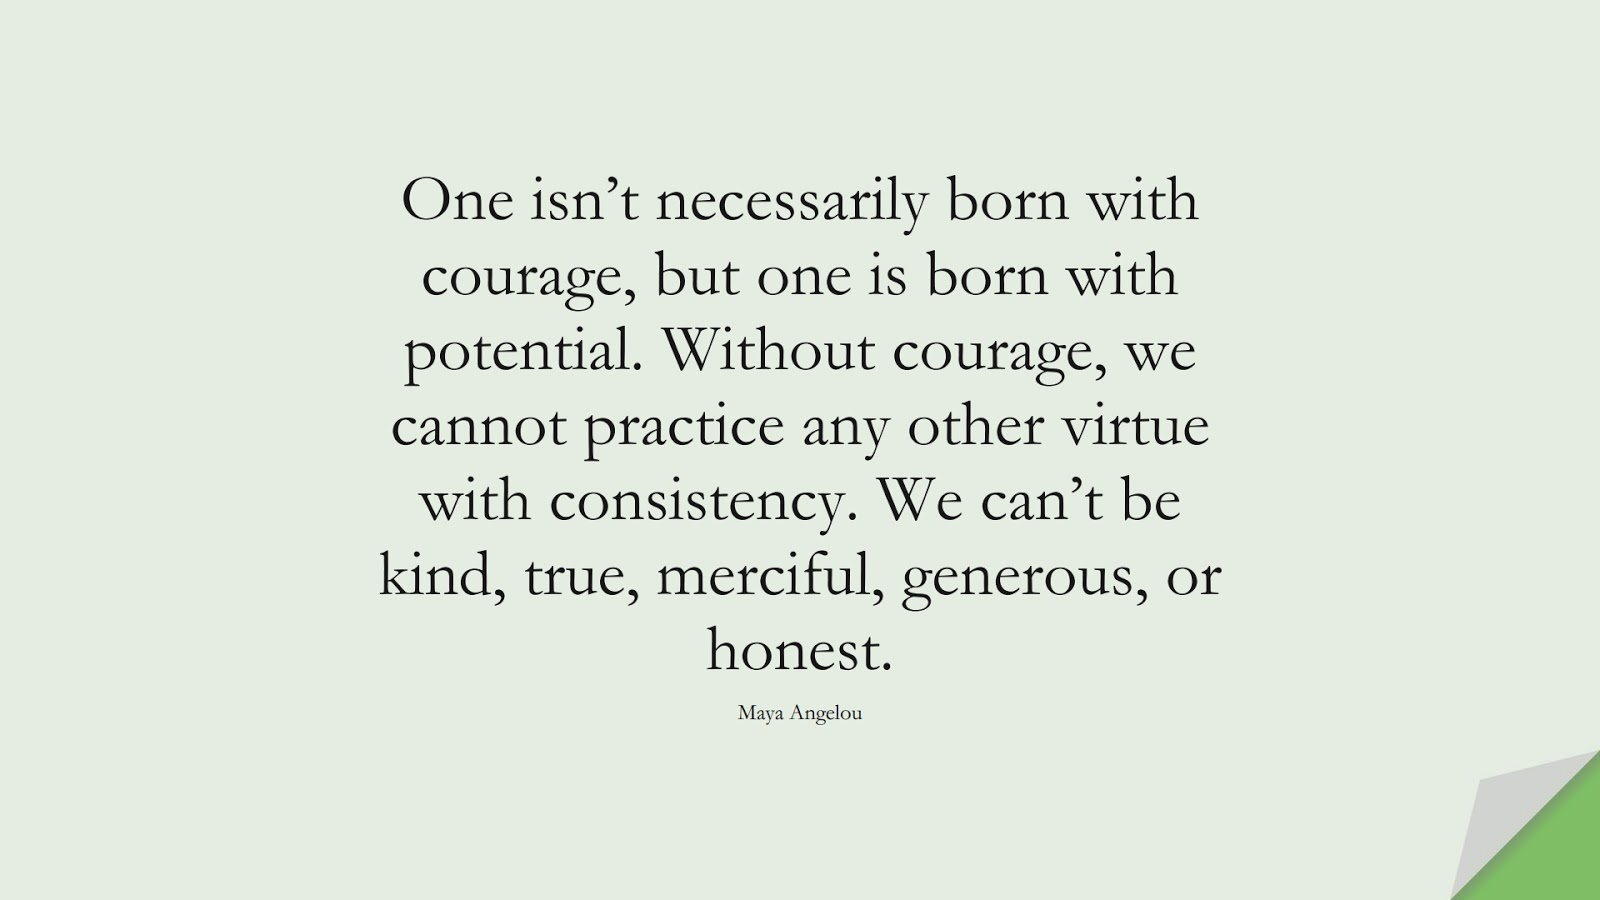 One isn't necessarily born with courage, but one is born with potential. Without courage, we cannot practice any other virtue with consistency. We can't be kind, true, merciful, generous, or honest. (Maya Angelou);  #CourageQuotes